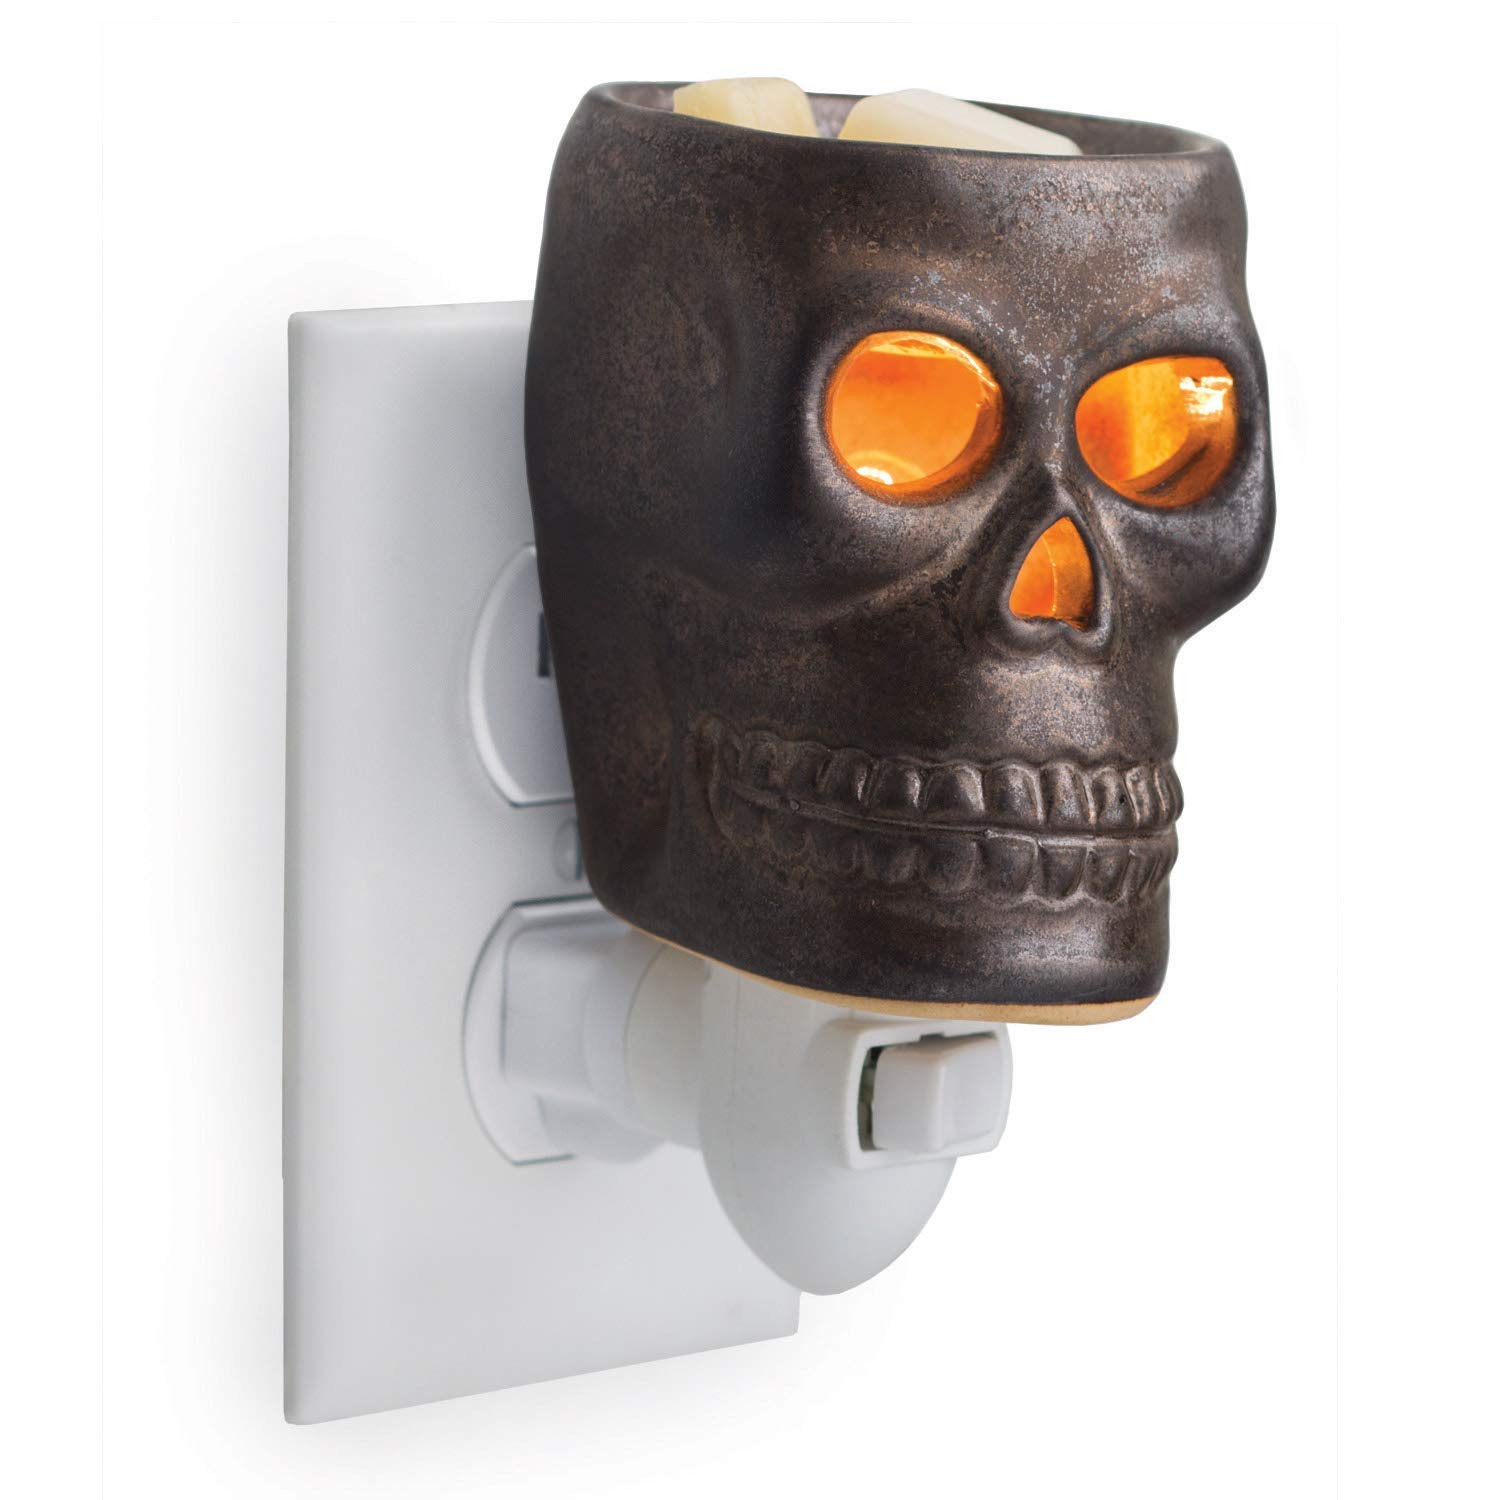 CANDLE WARMERS ETC Pluggable Fragrance Warmer- Decorative Plug-in for Warming Scented Candle Wax Melts and Tarts or Essential Oils, Skull